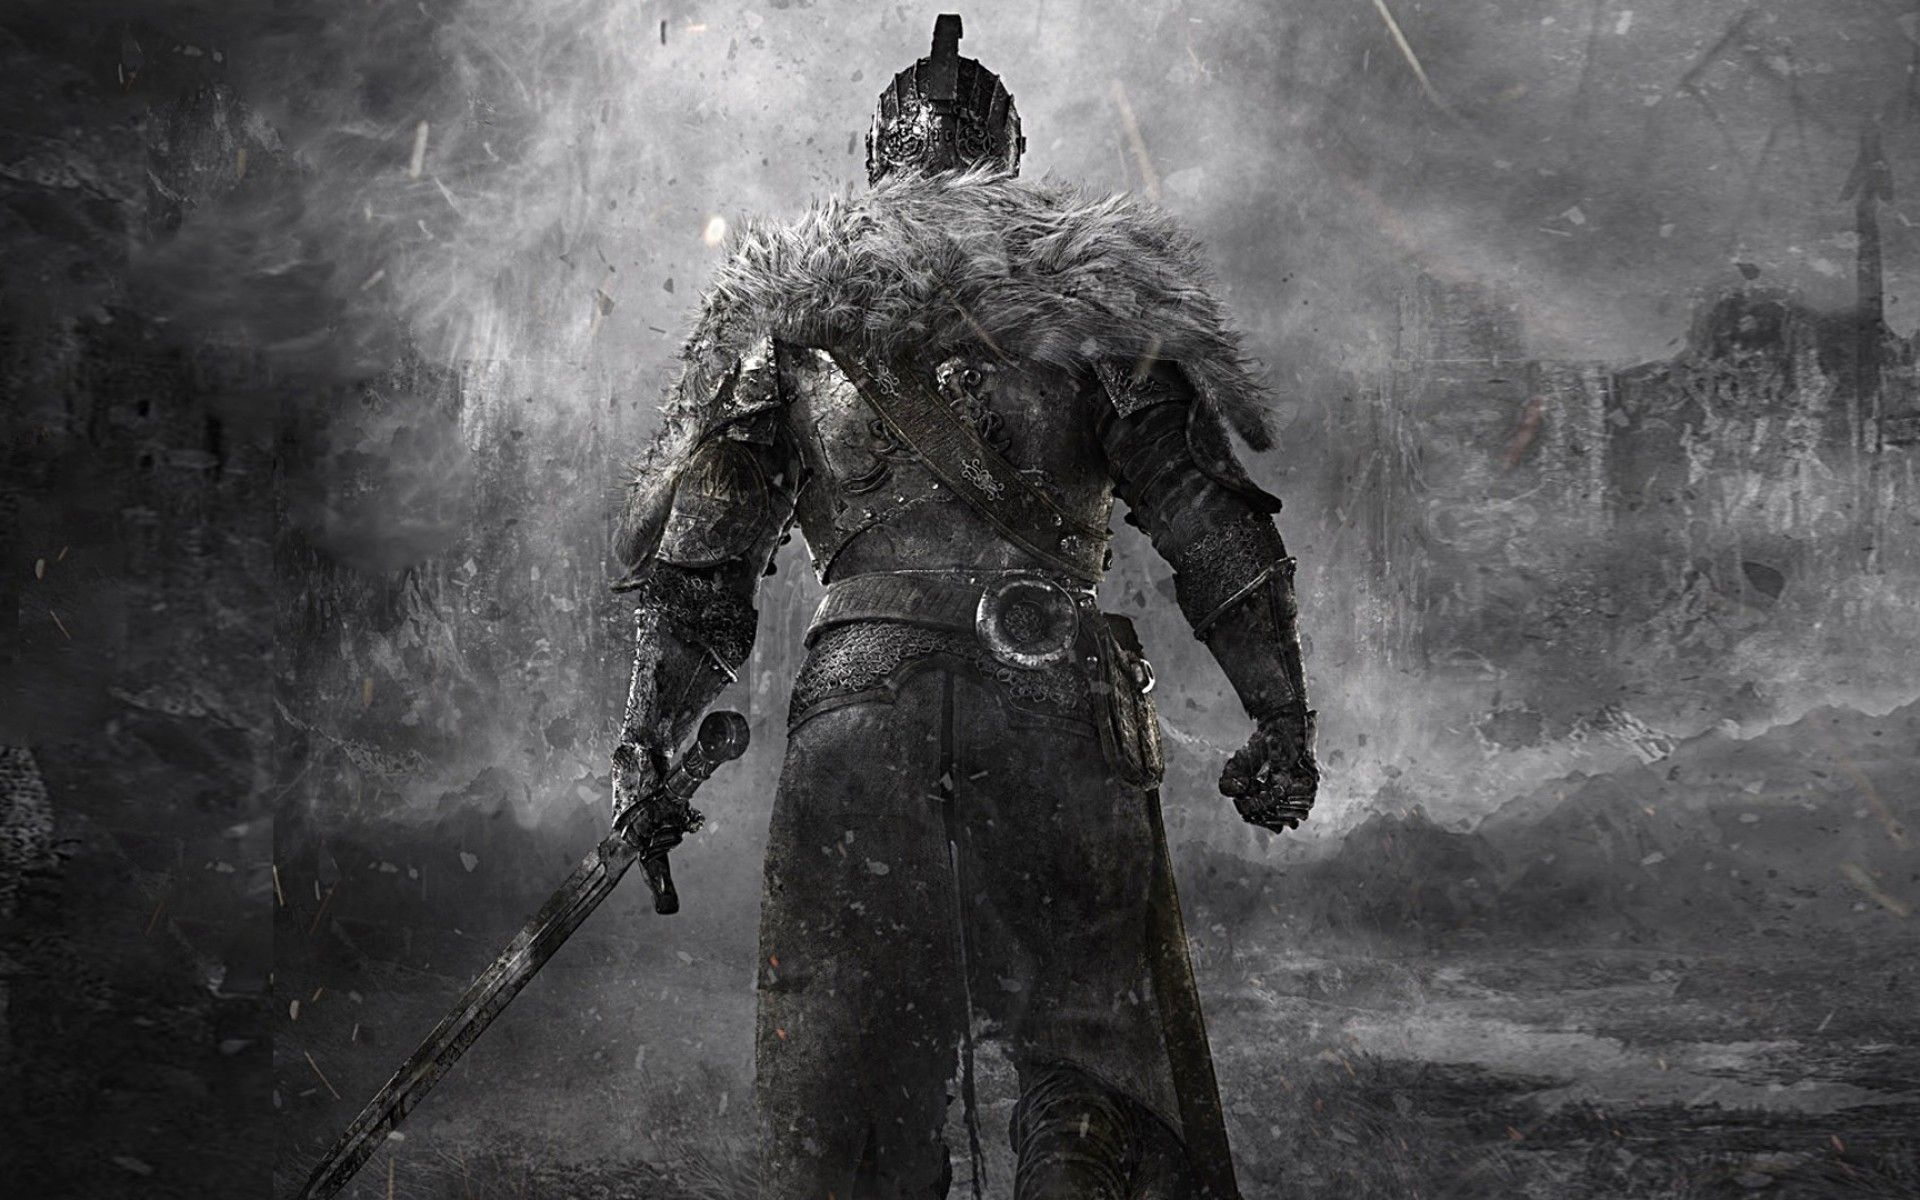 NC18: Dark Souls Wallpapers, Awesome Dark Souls Backgrounds ...